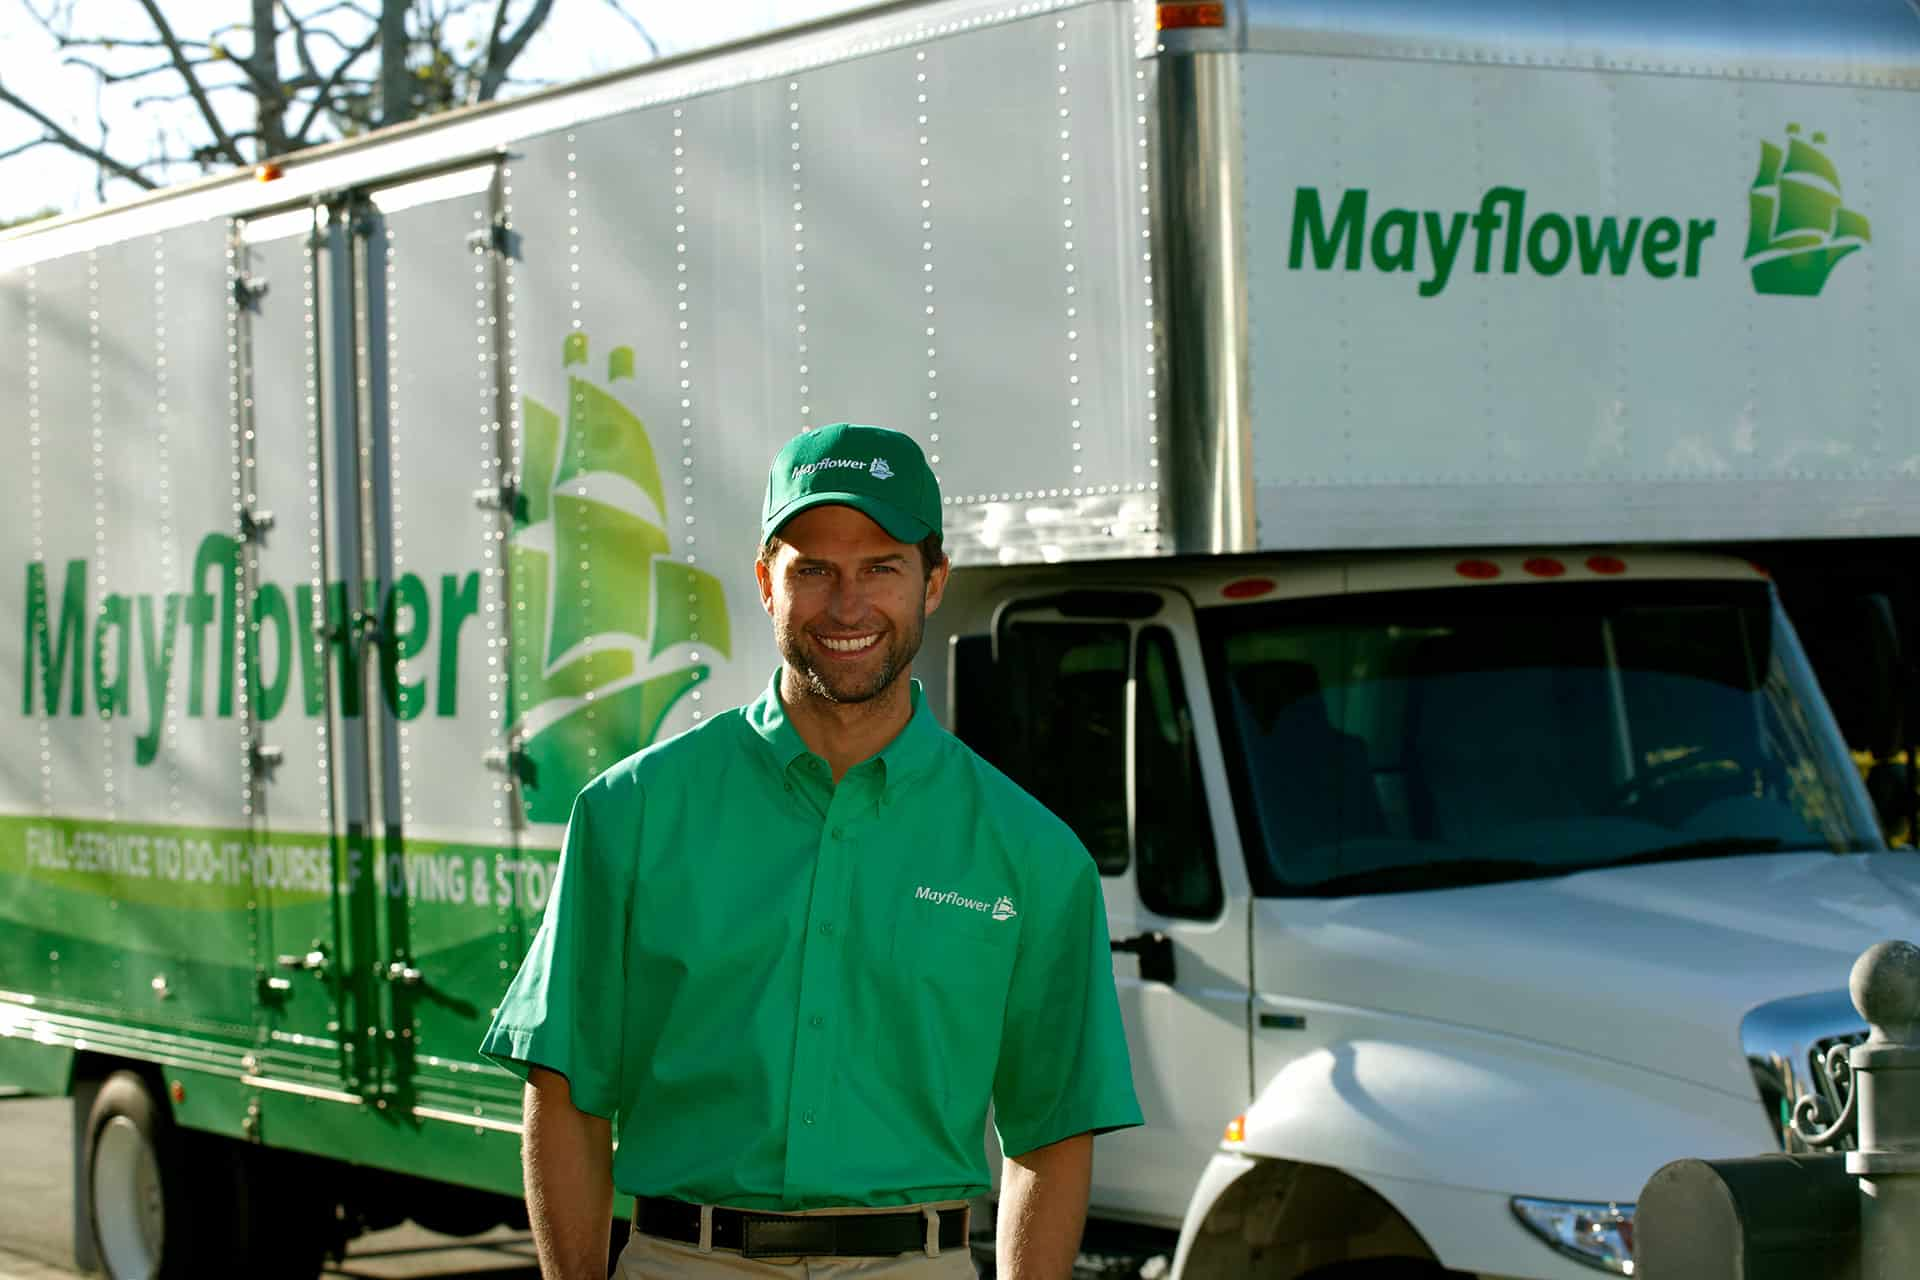 mover in front of truck